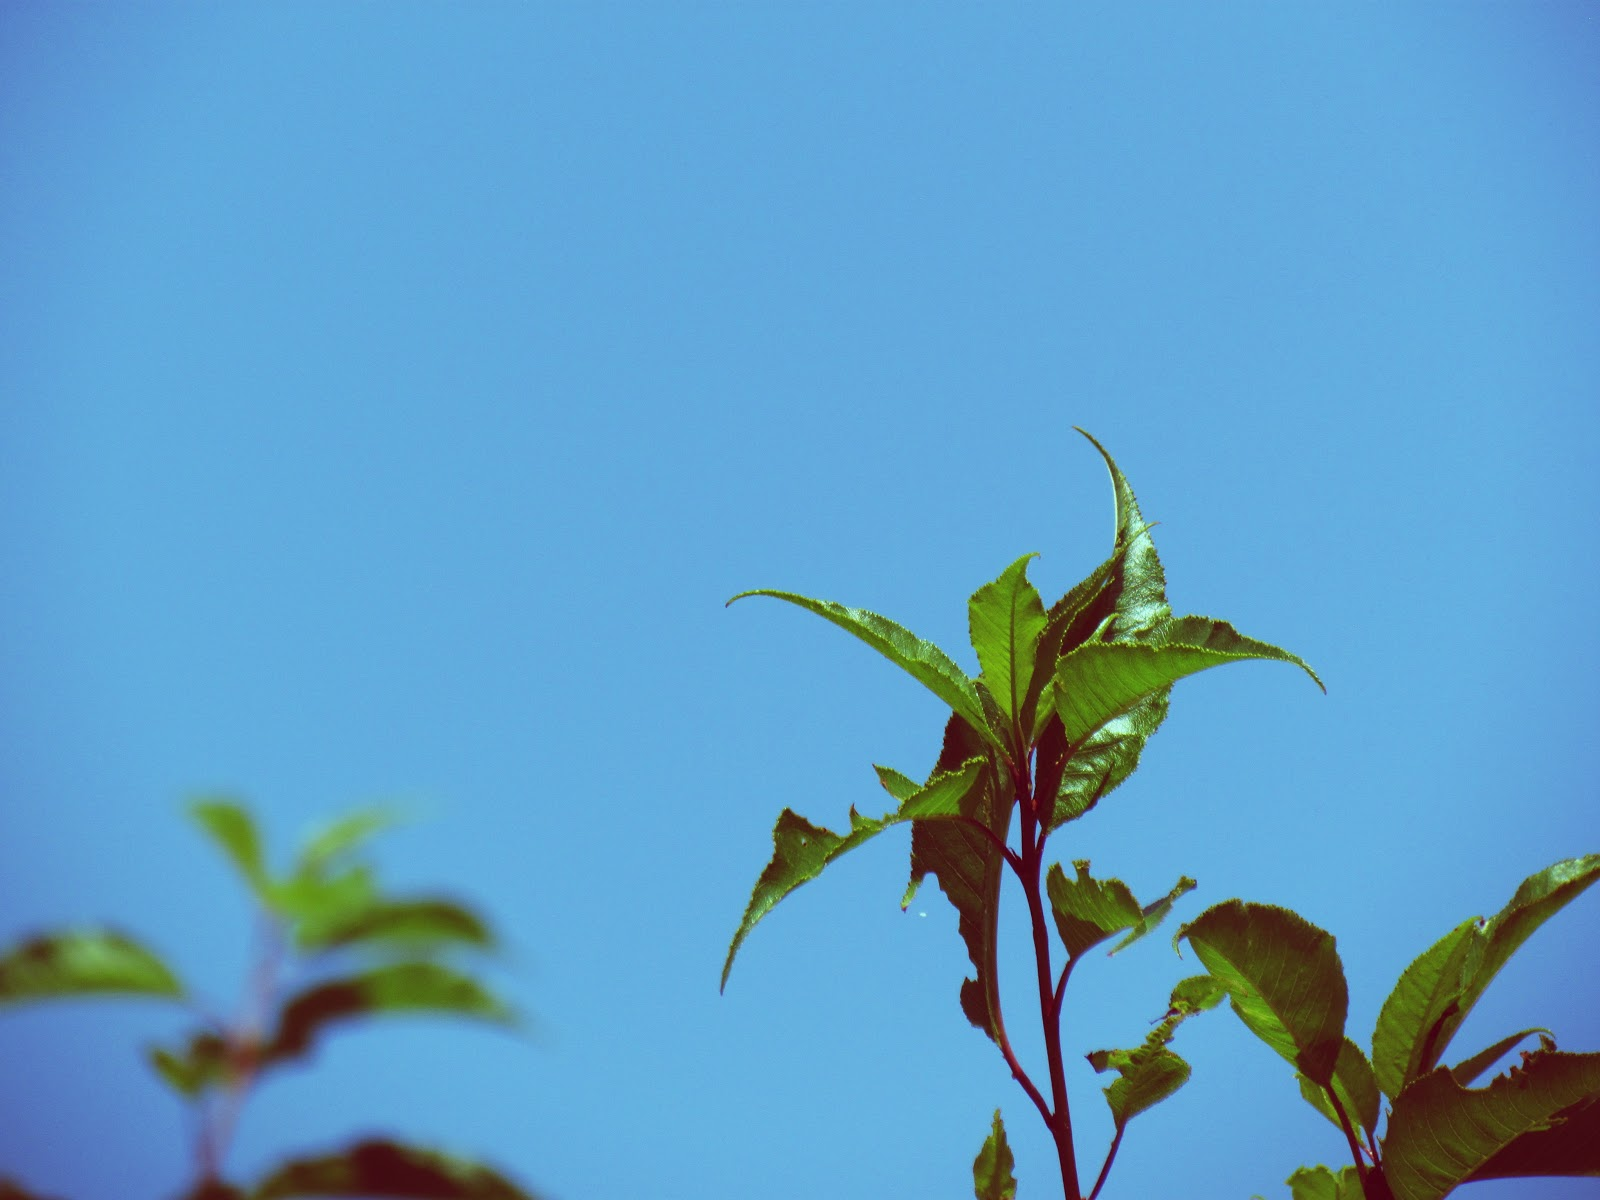 A clear day with blue skies and green leaves turning from summer with autumn closing in